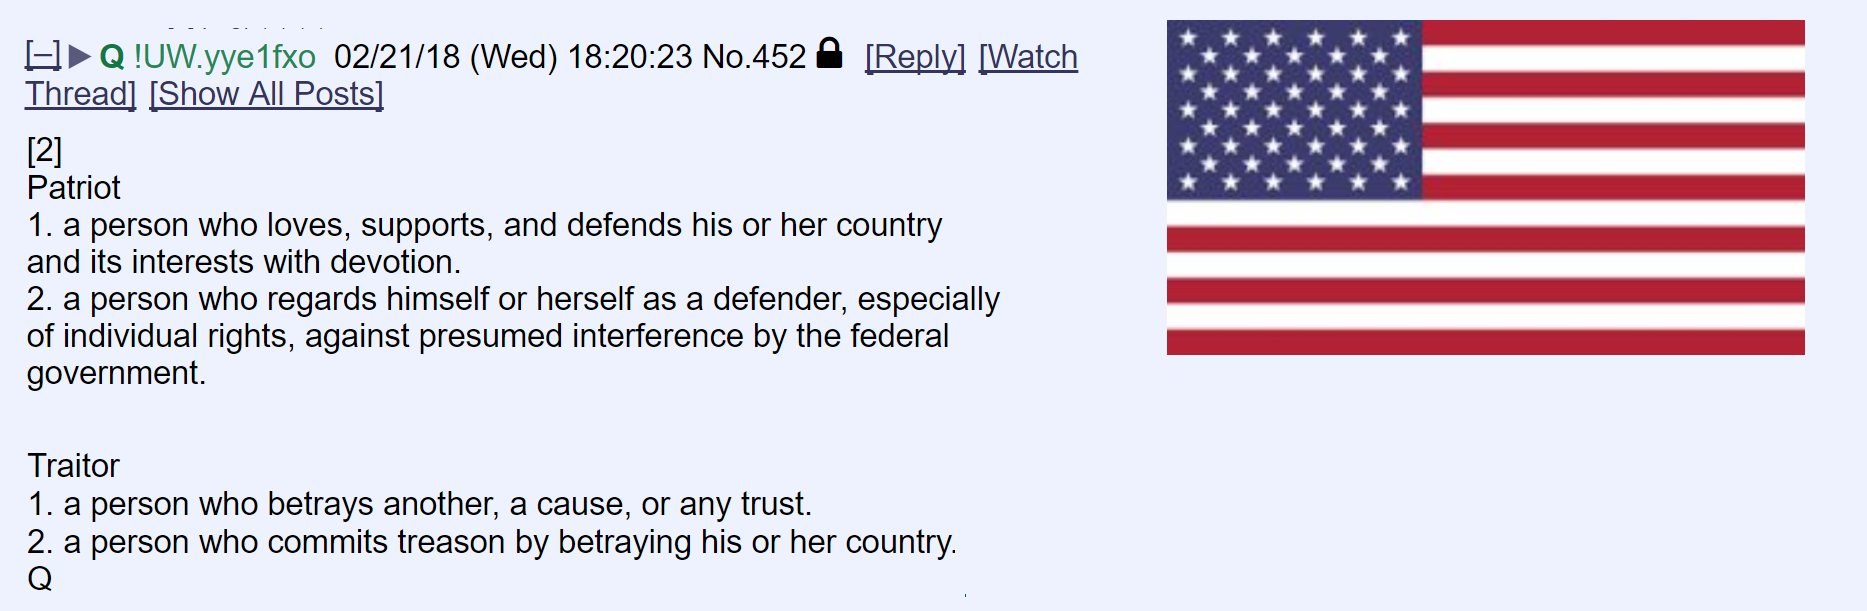 QAnon 24 June 2020 - Patriot - Traitor